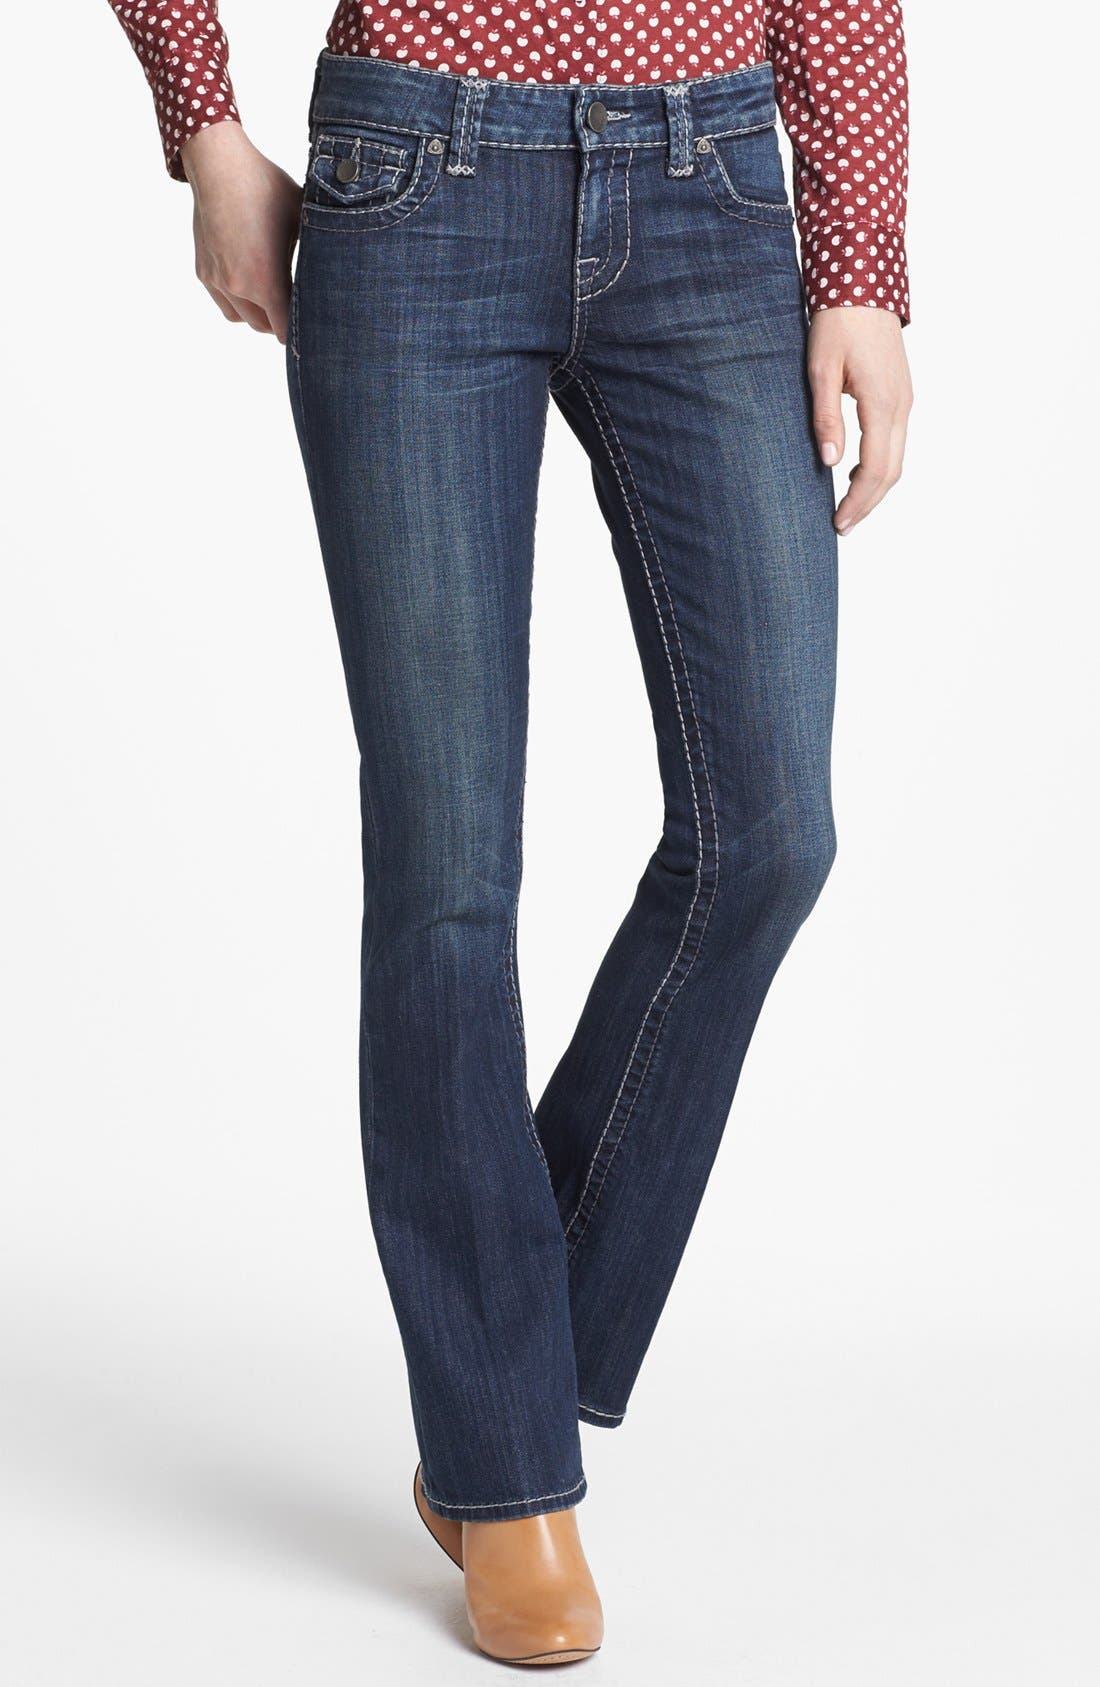 Alternate Image 1 Selected - KUT from the Kloth 'Natalie' Bootcut Jeans (Invisible)